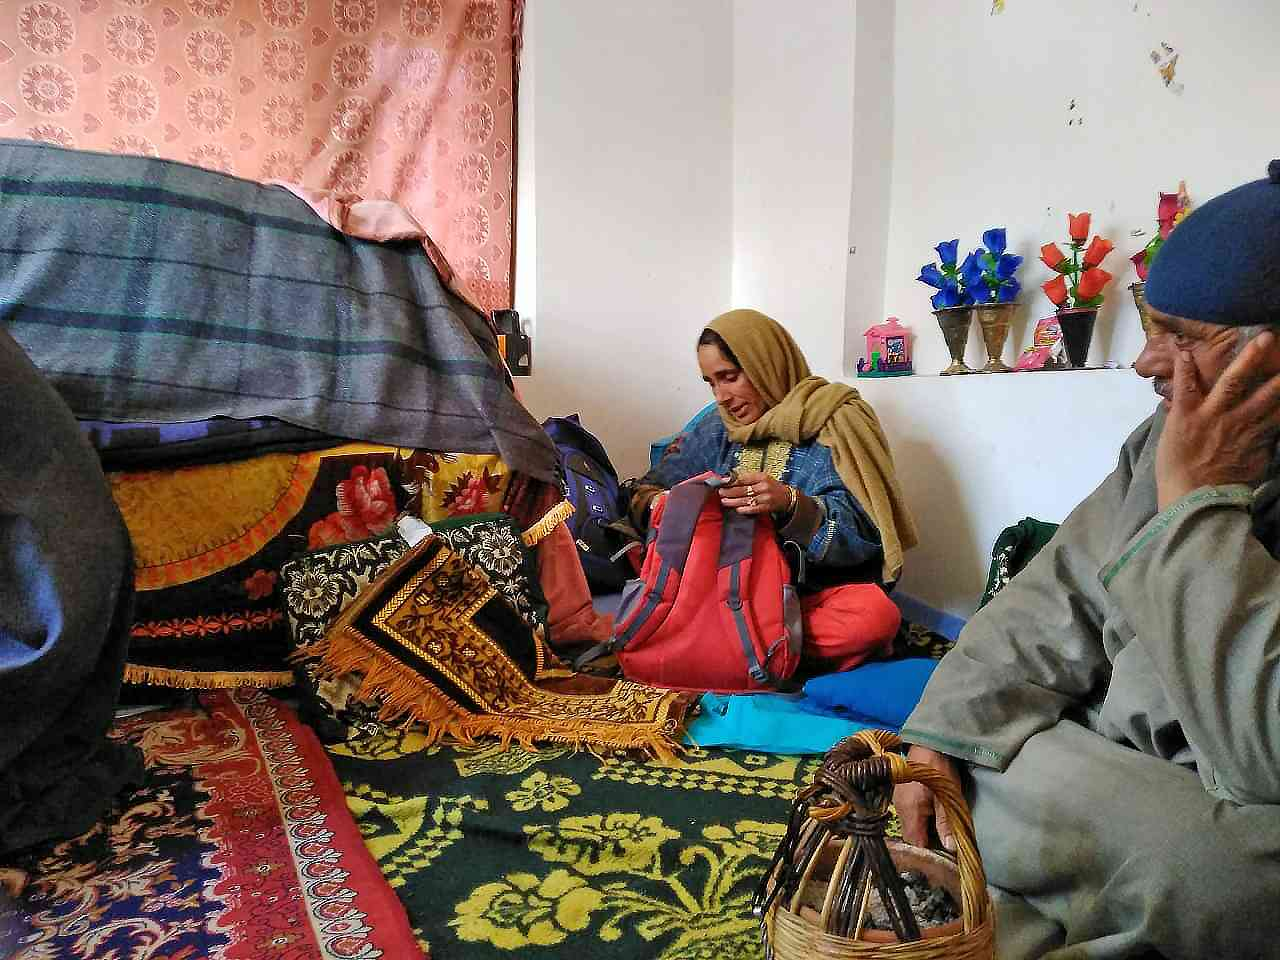 Khushboo Jan's parents at their home in Shopian. Photo credit: Safwat Zargar